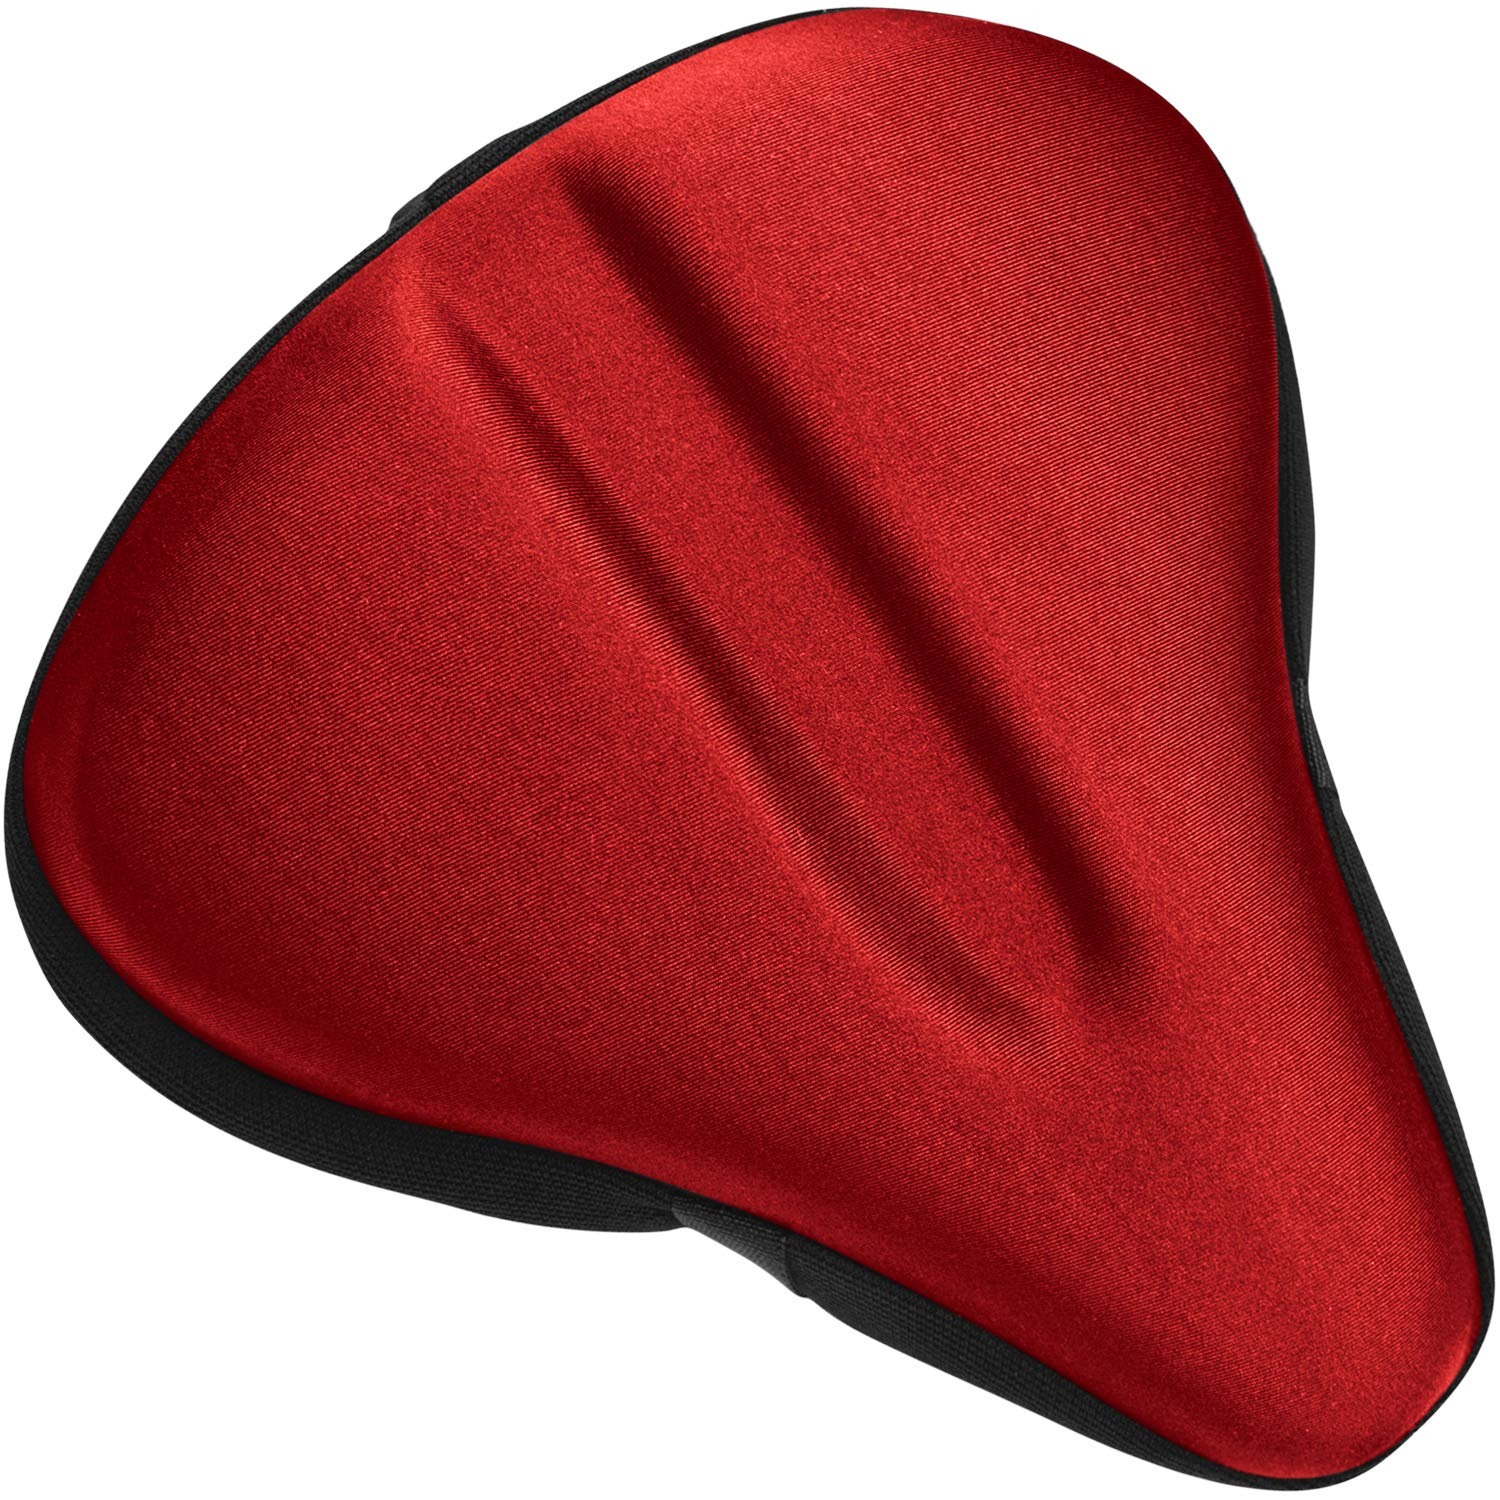 Bikeroo Large Exercise Bike Seat Cushion - Bicycle Wide Gel Soft Pad - Most Comfortable Bicycle Saddle Cover for Women and Men Bike seat Gel Cover fits Cruiser and Stationary Bikes, Indoor Cycling